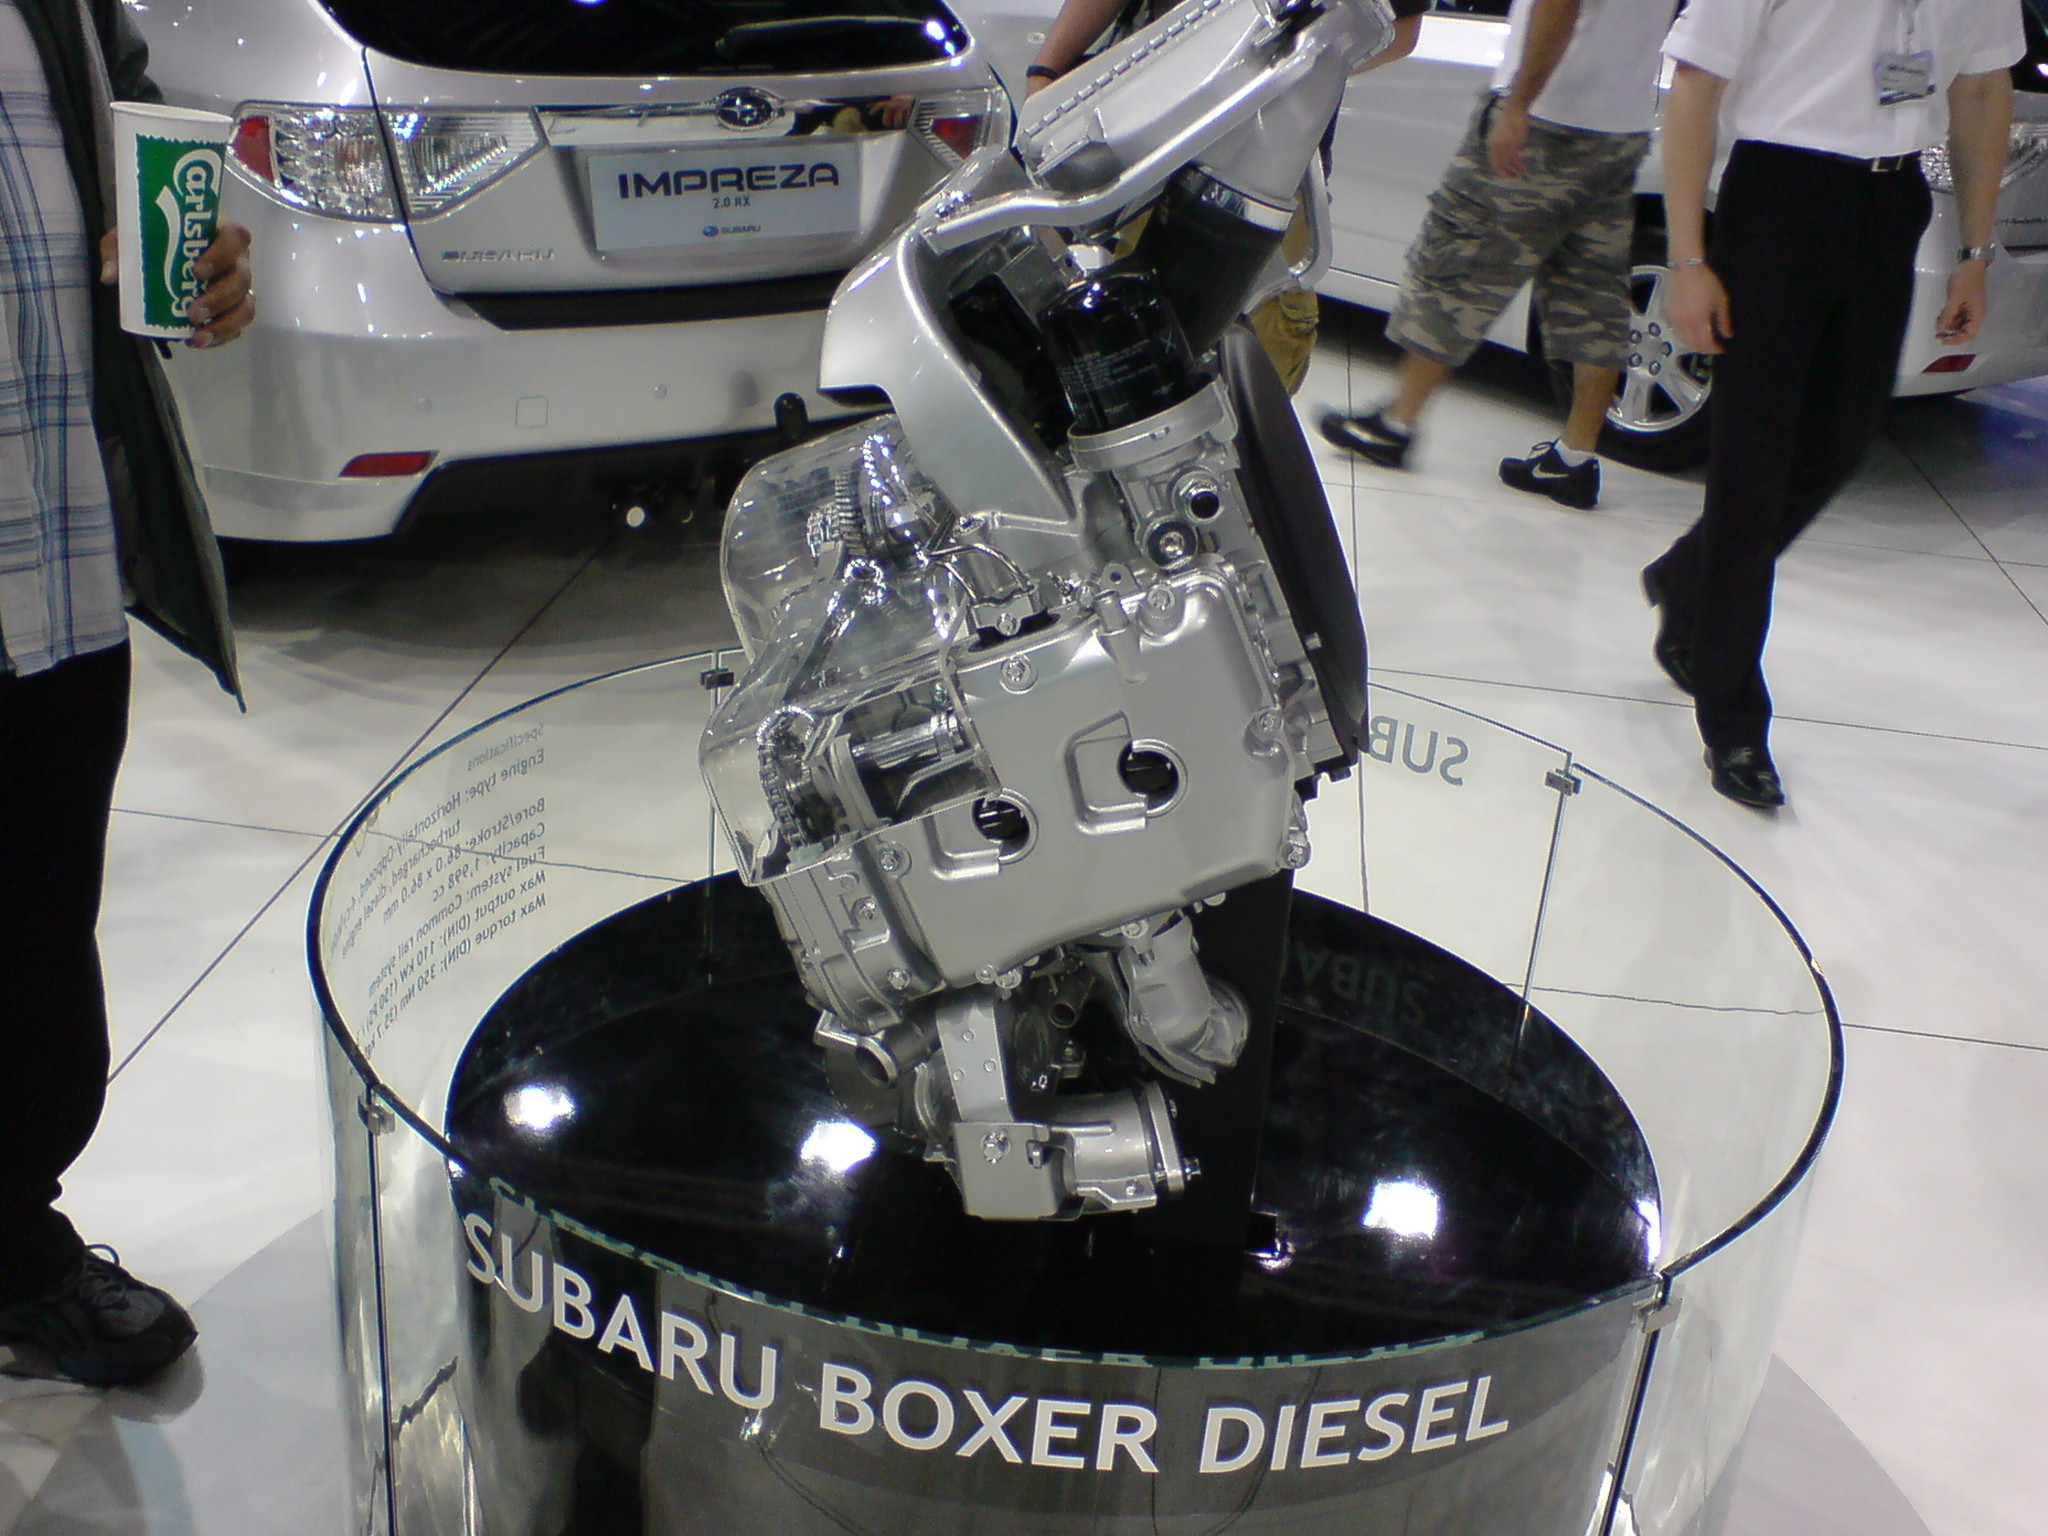 File:Subaru Boxer Diesel Engine - Flickr - Alan D.jpg